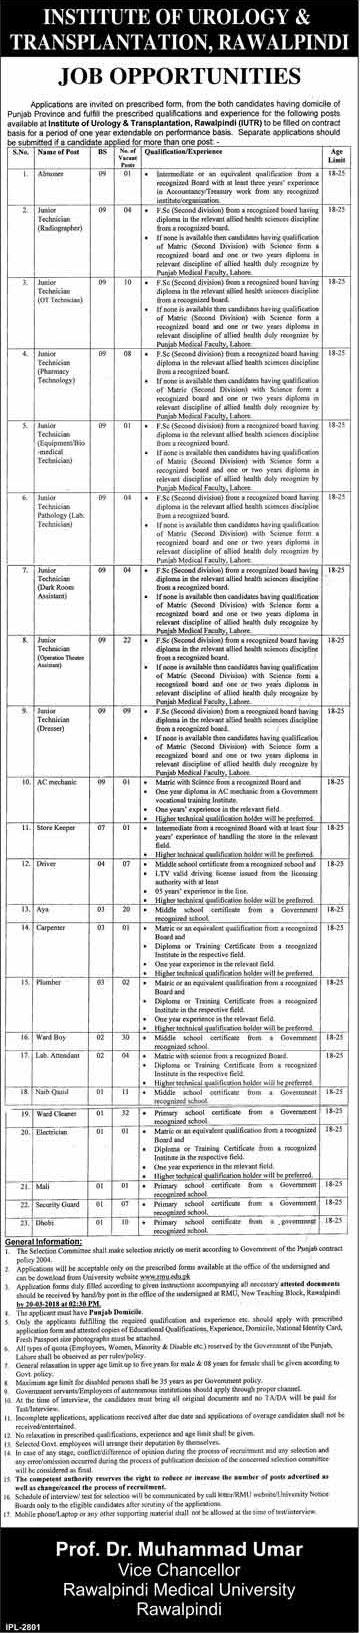 Jobs in Institute of Urology and Transplantation in Rawalpindi 03 March 2018